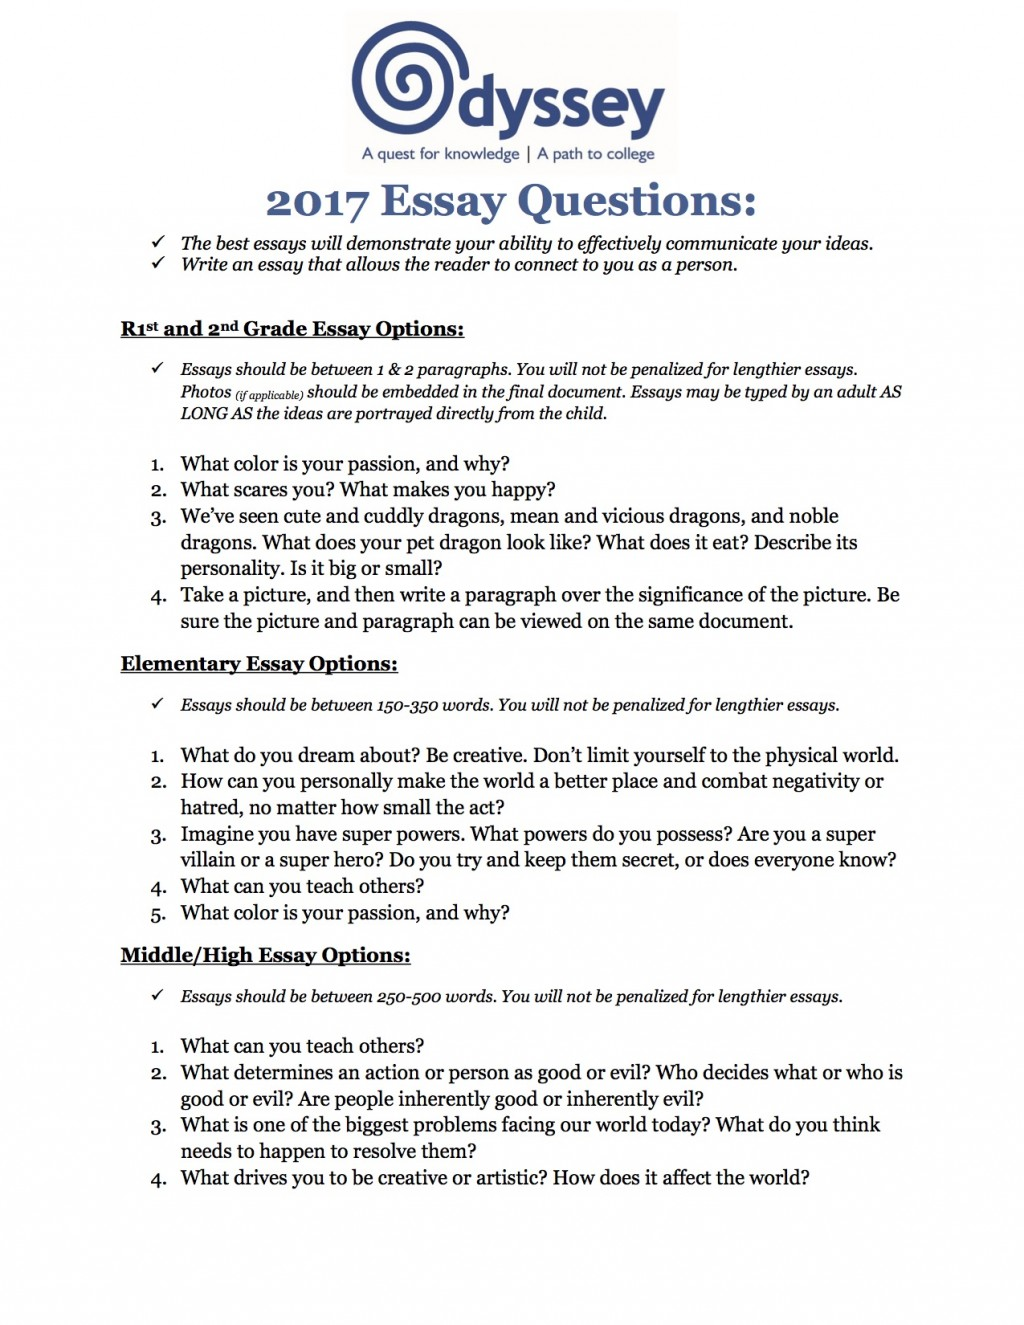 015 Best Essay Topics Example 5829f1d2c75f9a7c5588b1c6 Proposed20essay20topics202017 Surprising Research Paper For College Student High School Argumentative Large